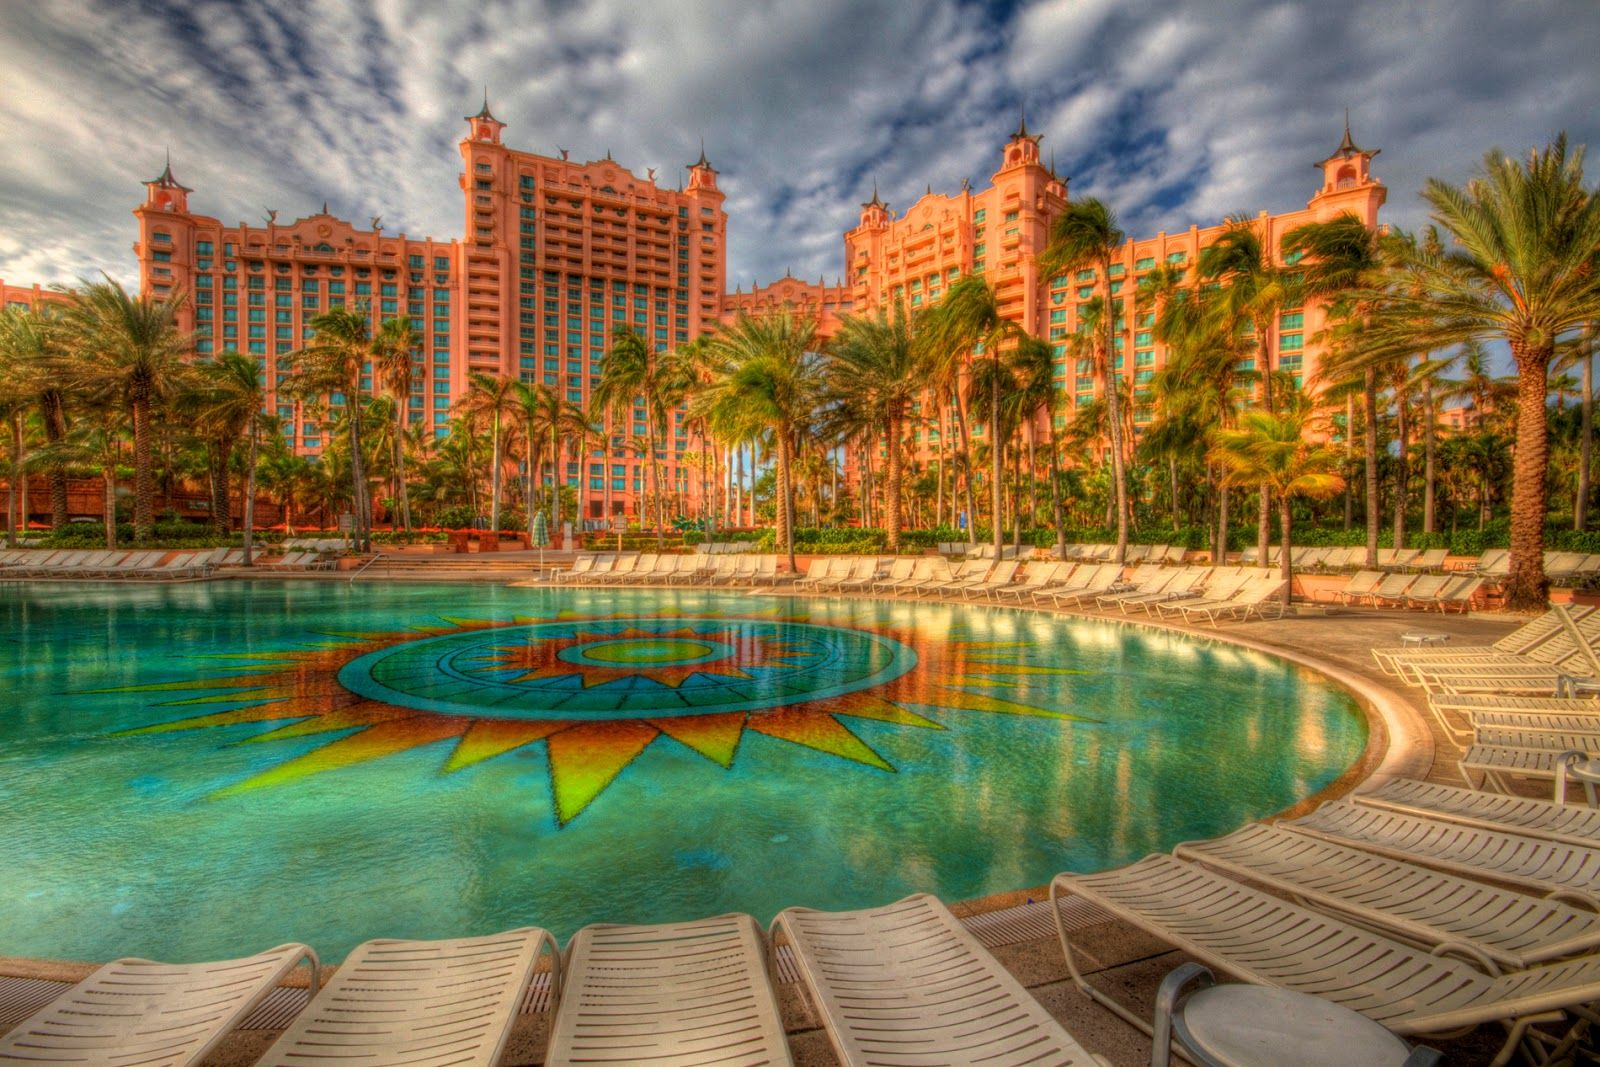 Items Similar To Travel Photography   Bahamas   Atlantis   Royal Towers    Palm Trees   Tropical Resort   Blue Sky   Morning   Exotic   HDR   Art  Print   On ...